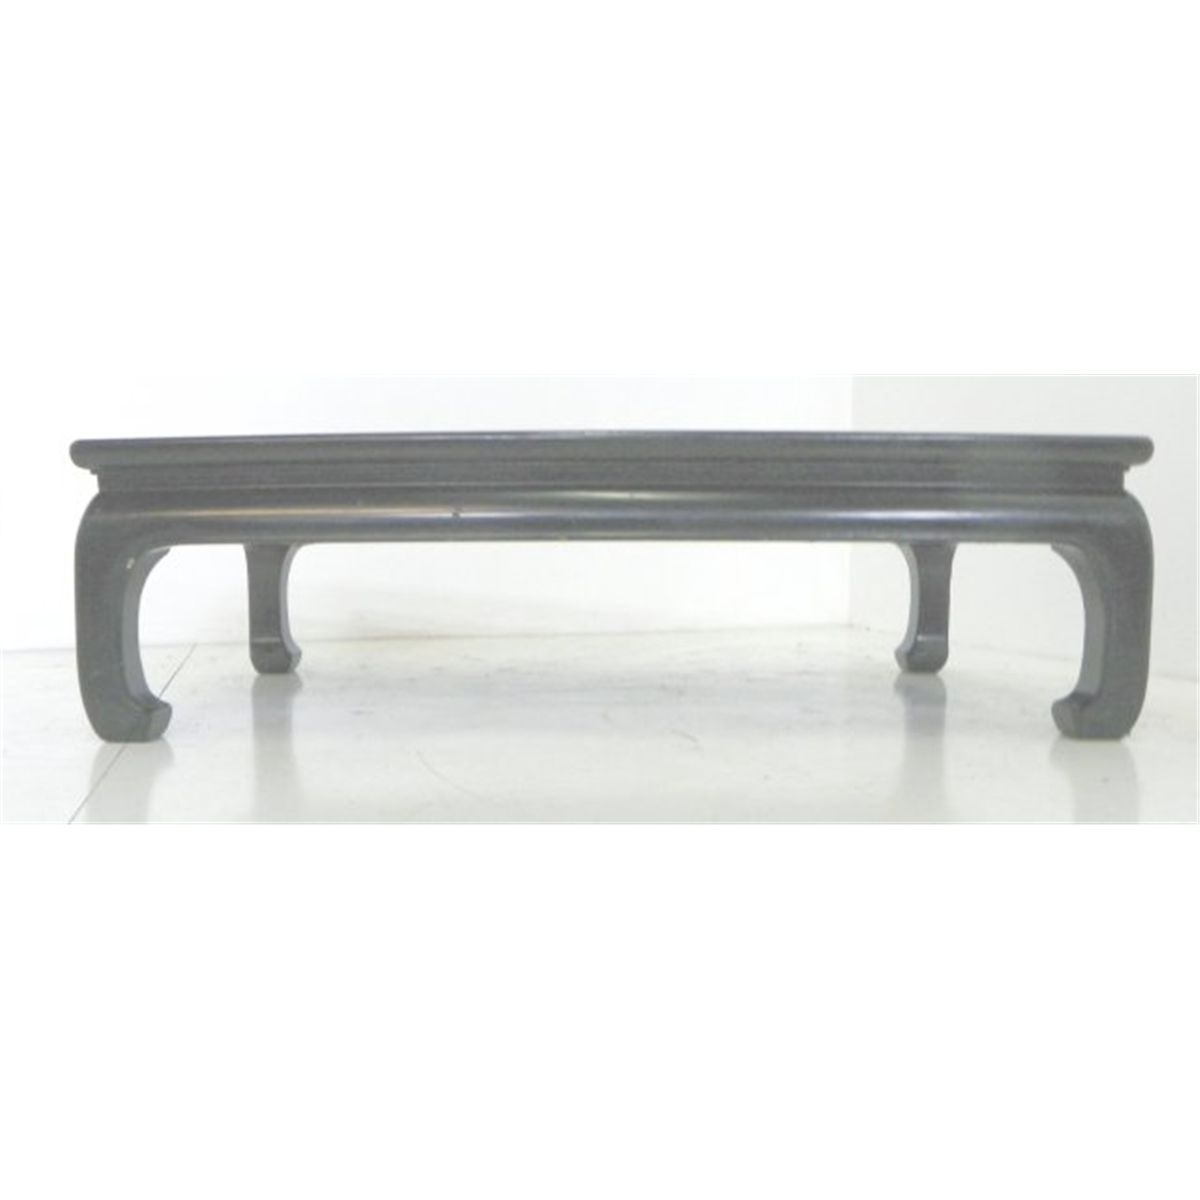 Stupendous Mid 20Th C Chinese Black Lacquer Coffee Table Pdpeps Interior Chair Design Pdpepsorg